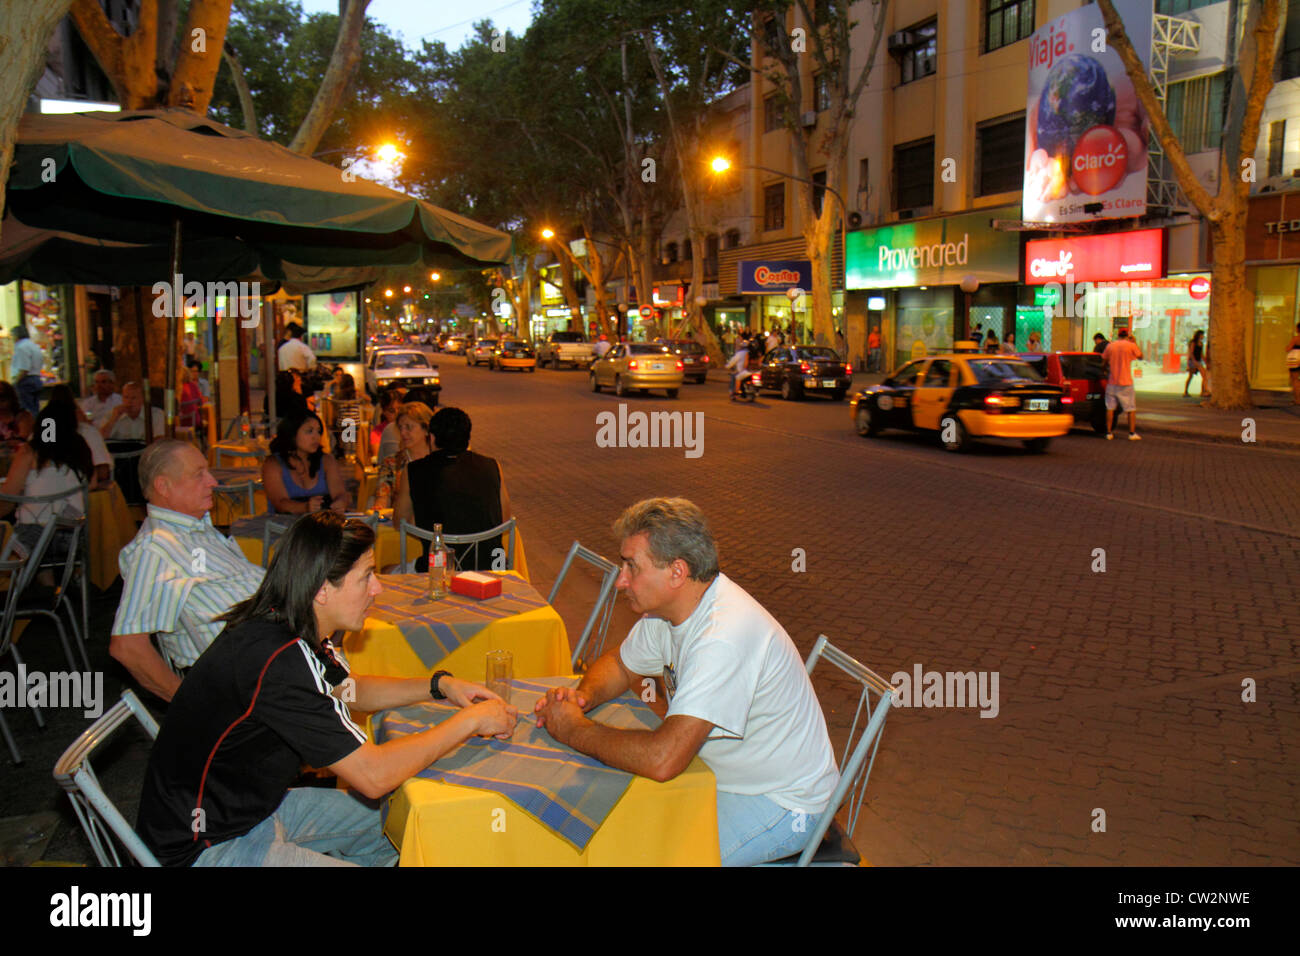 Mendoza Argentina Avenida San Martin street scene commercial district busy avenue sidewalk nightlife shopping alfresco - Stock Image